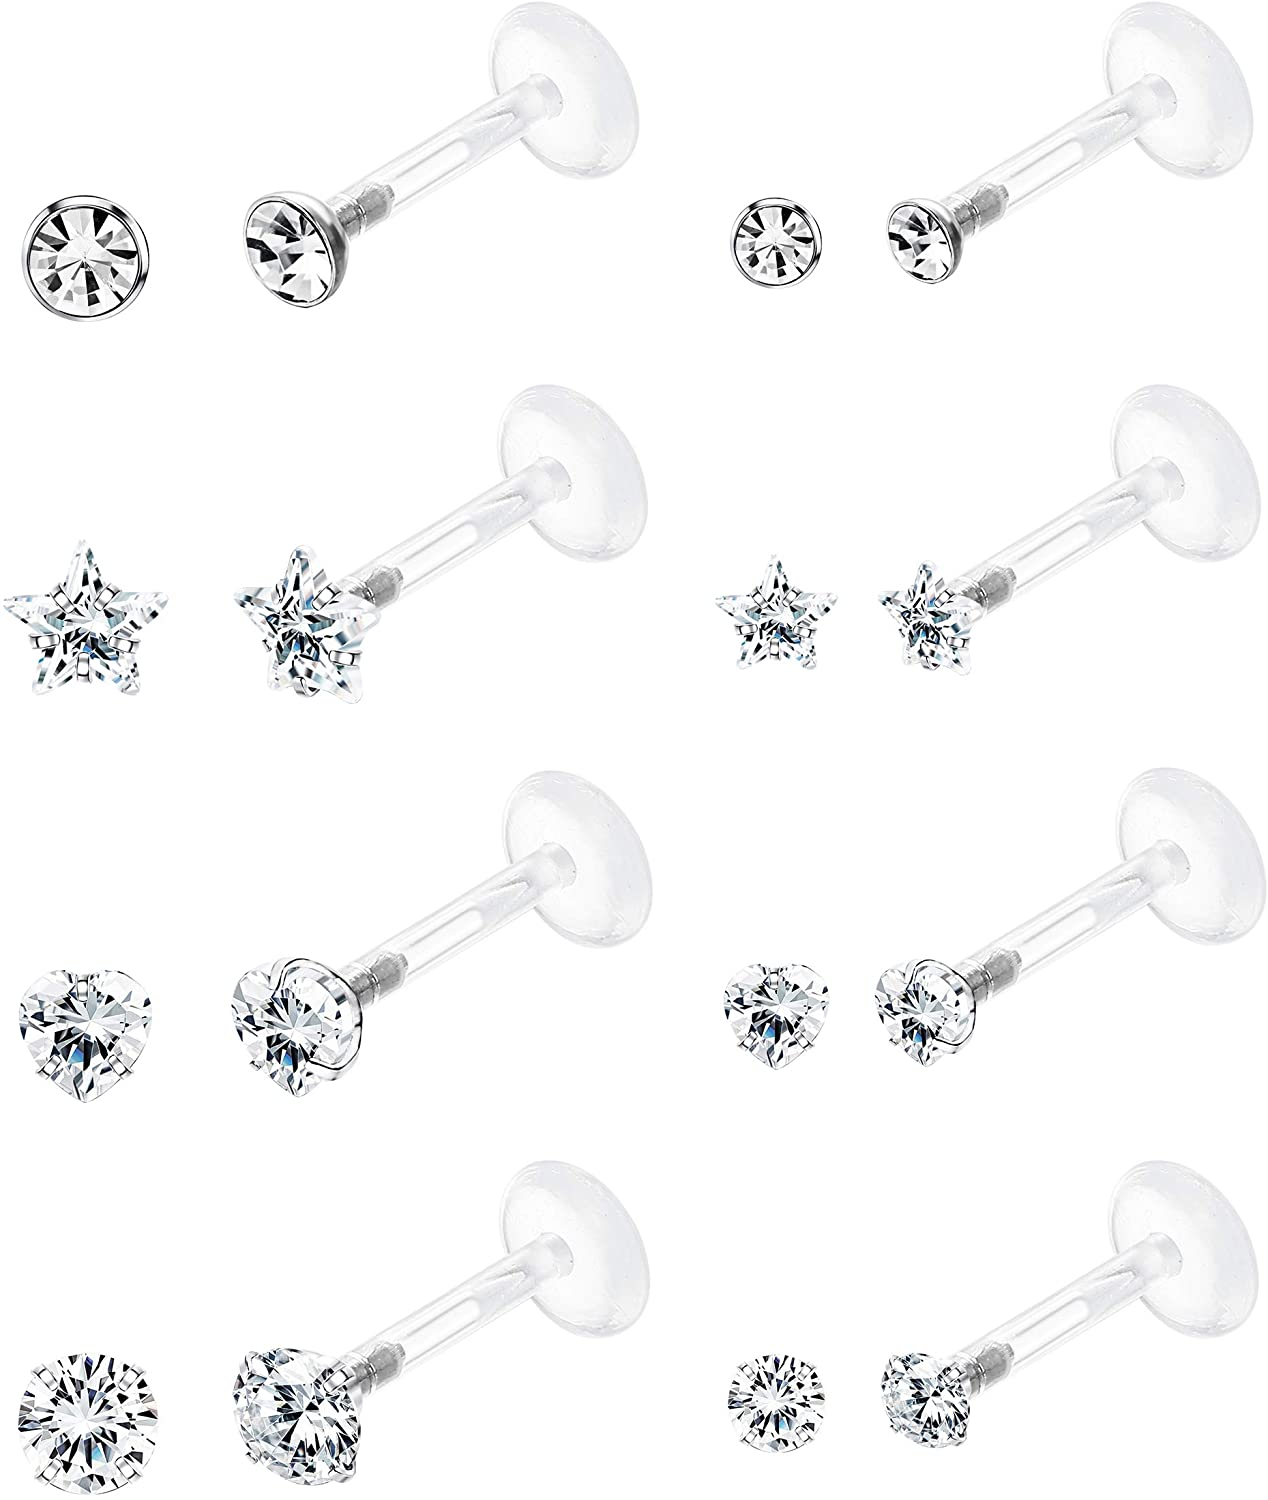 Jstyle 8Pairs 16G Forward Helix Cartilage Tragus Earring Studs Internal Threaded Labret Lip Monroe Ring 8MM Barbell Body Piercing Jewelry